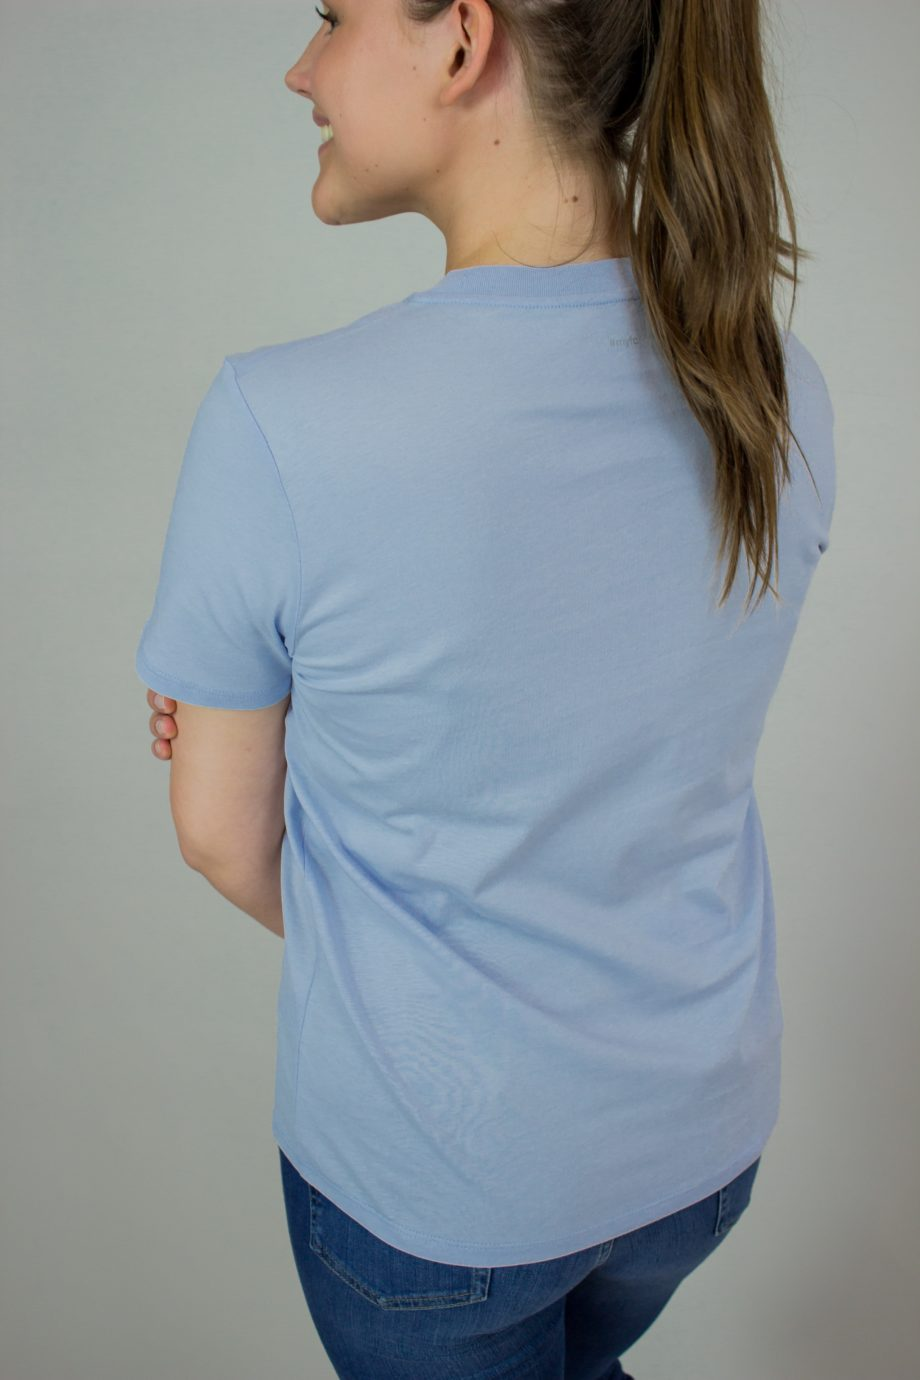 19. FRENCH CONNECTION Blue organic cotton T-shirt